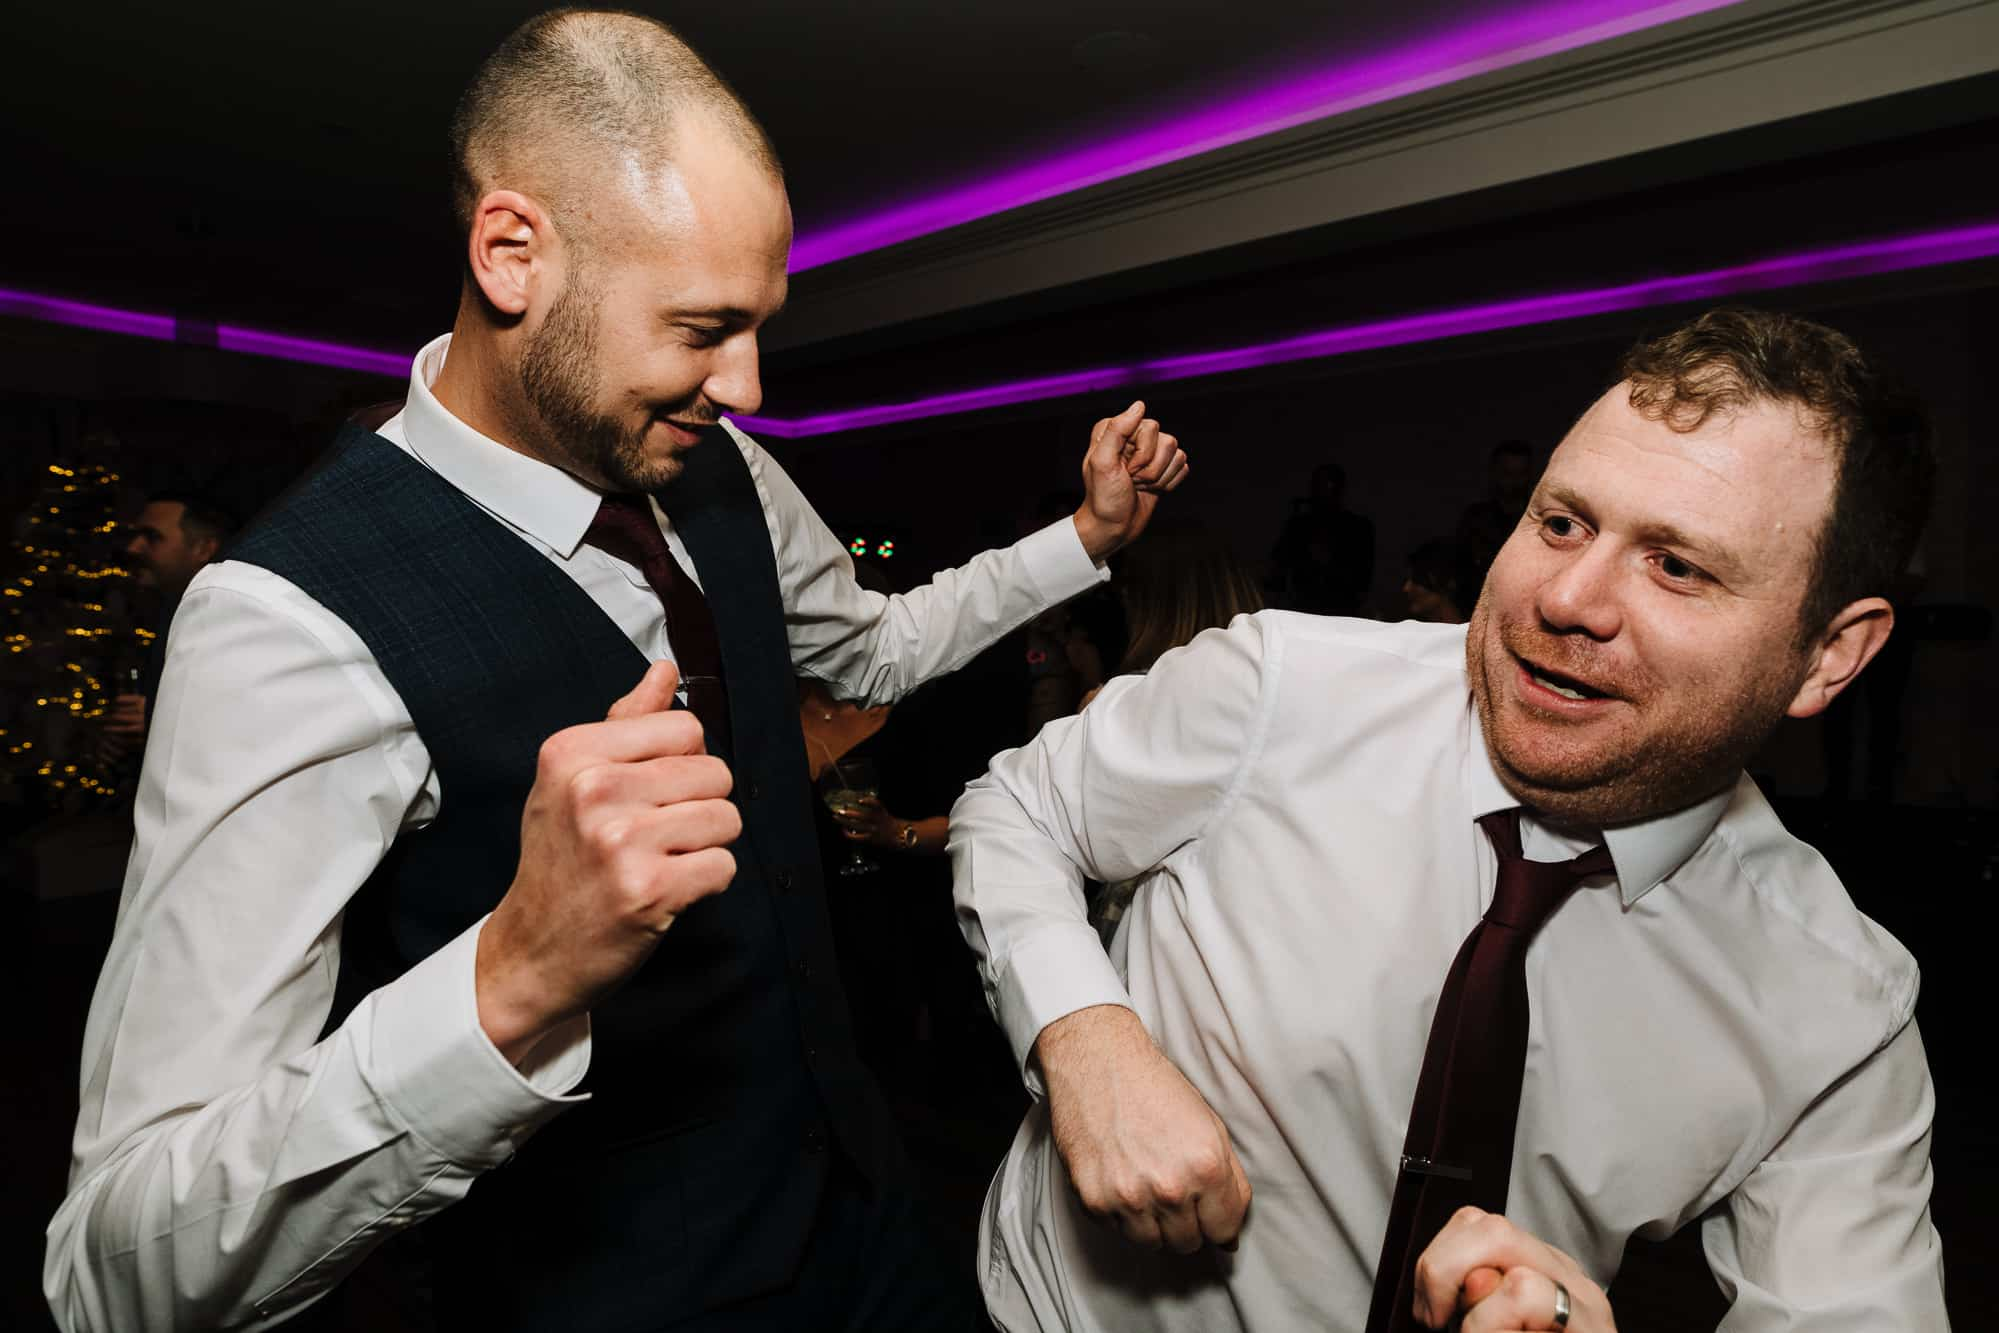 Groom and his best man dancing